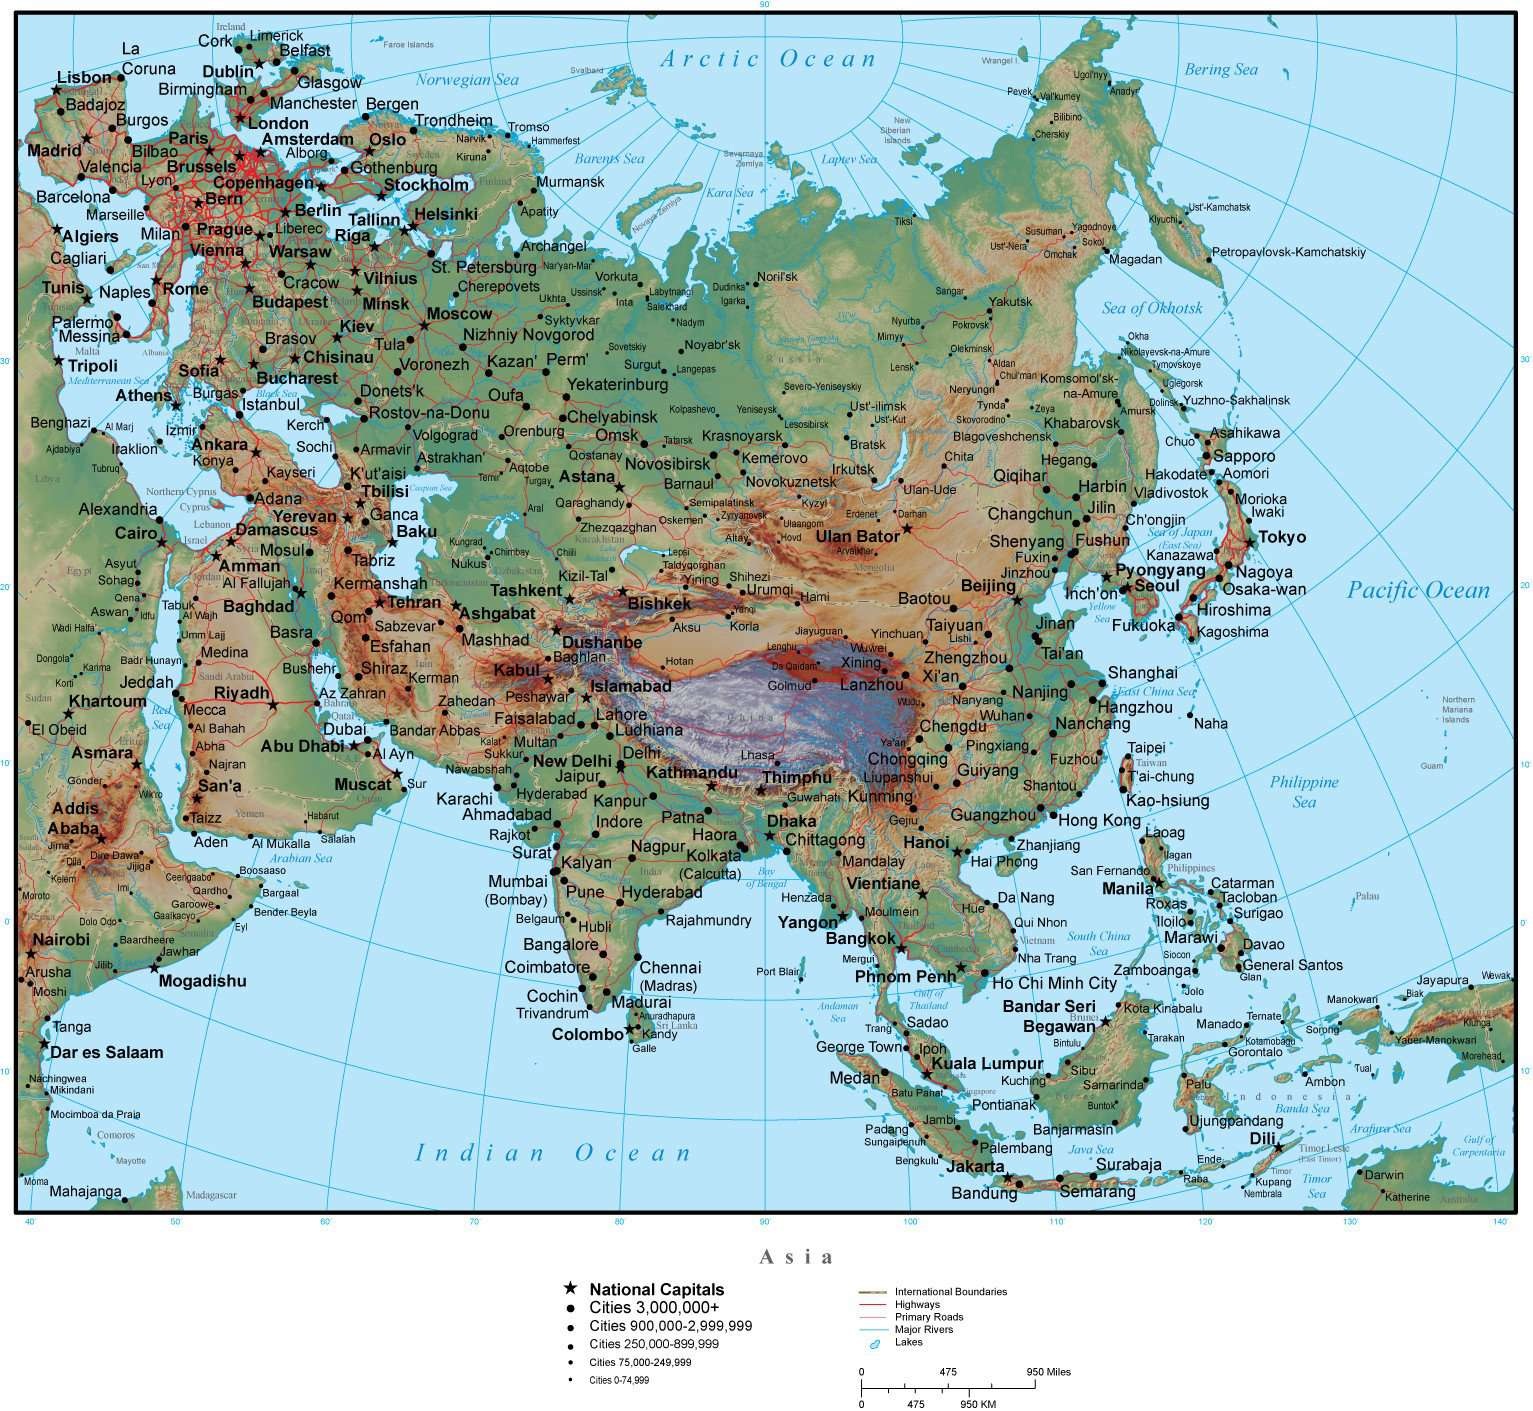 Asia Terrain map in Adobe Illustrator vector format with Photoshop ...